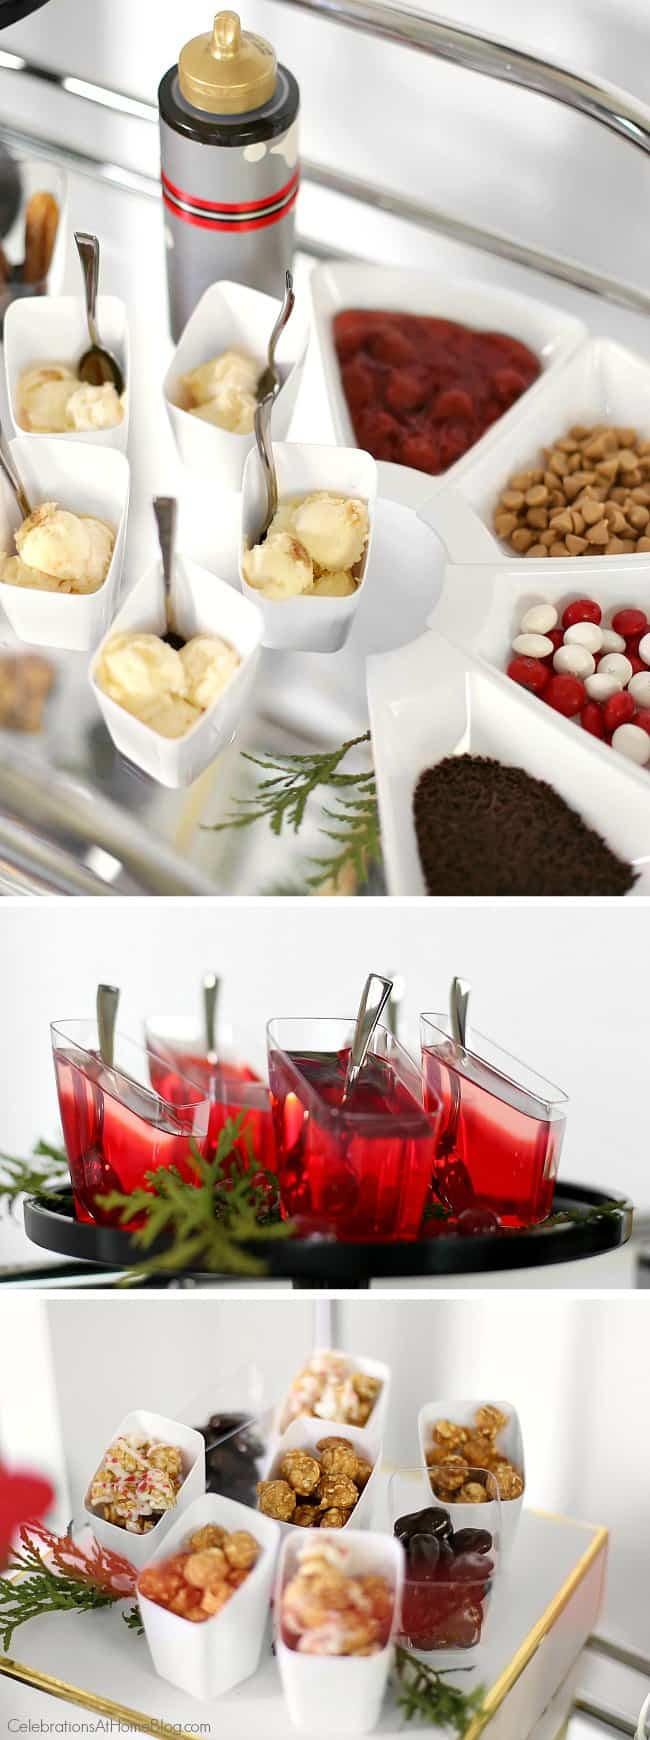 90+ Ideas For Christmas Entertaining Food - I LOVE All Of These ...